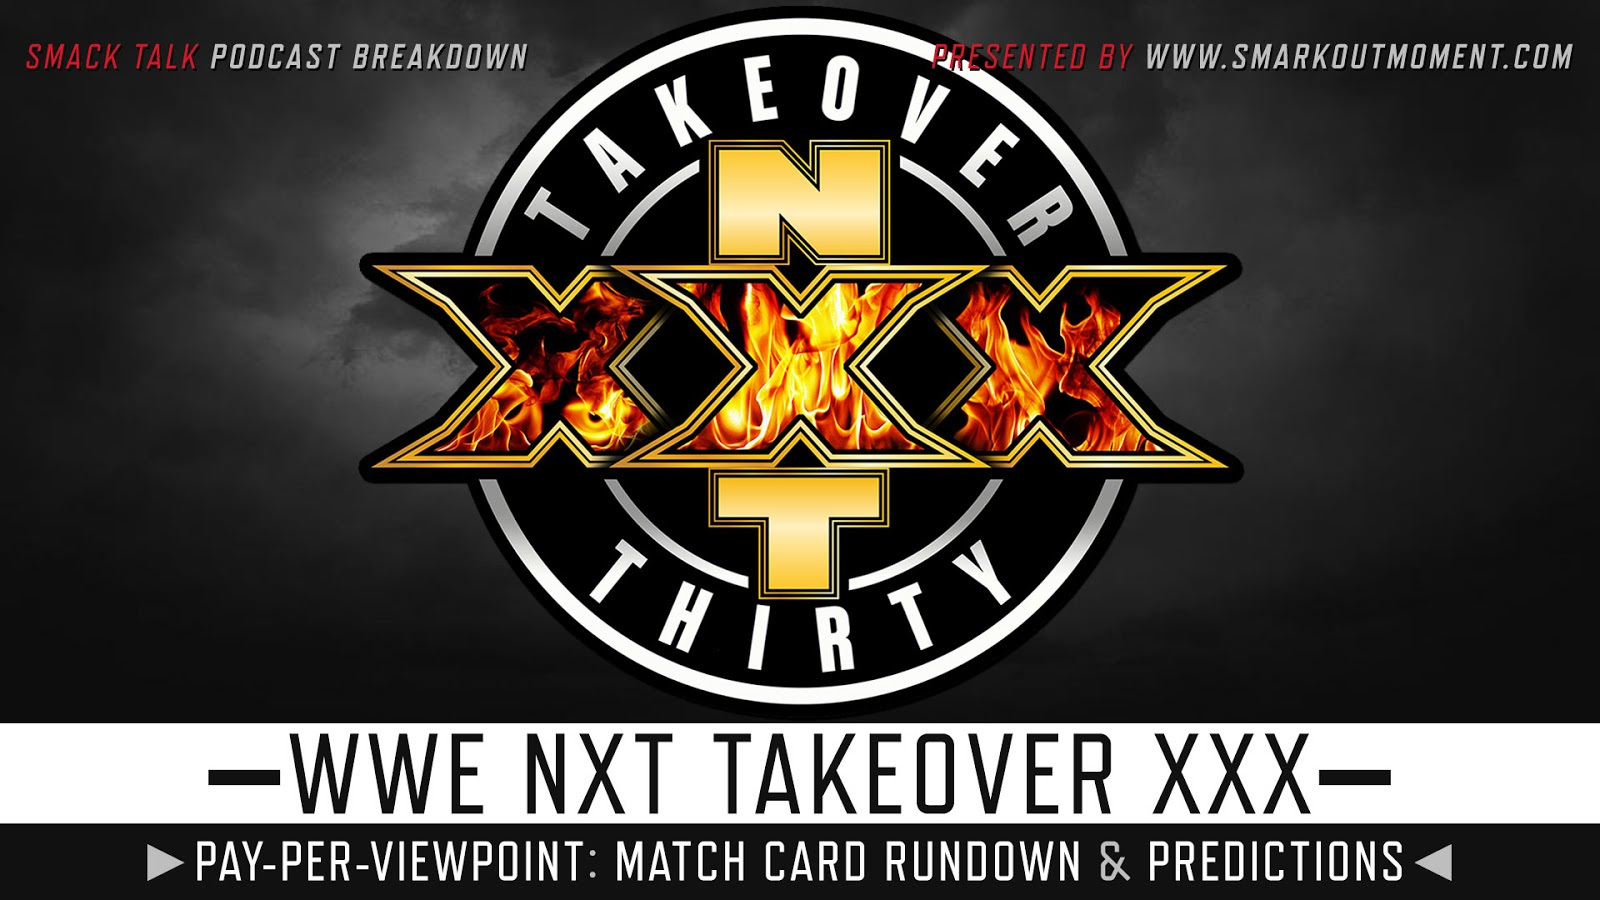 WWE NXT TakeOver 30 spoilers podcast